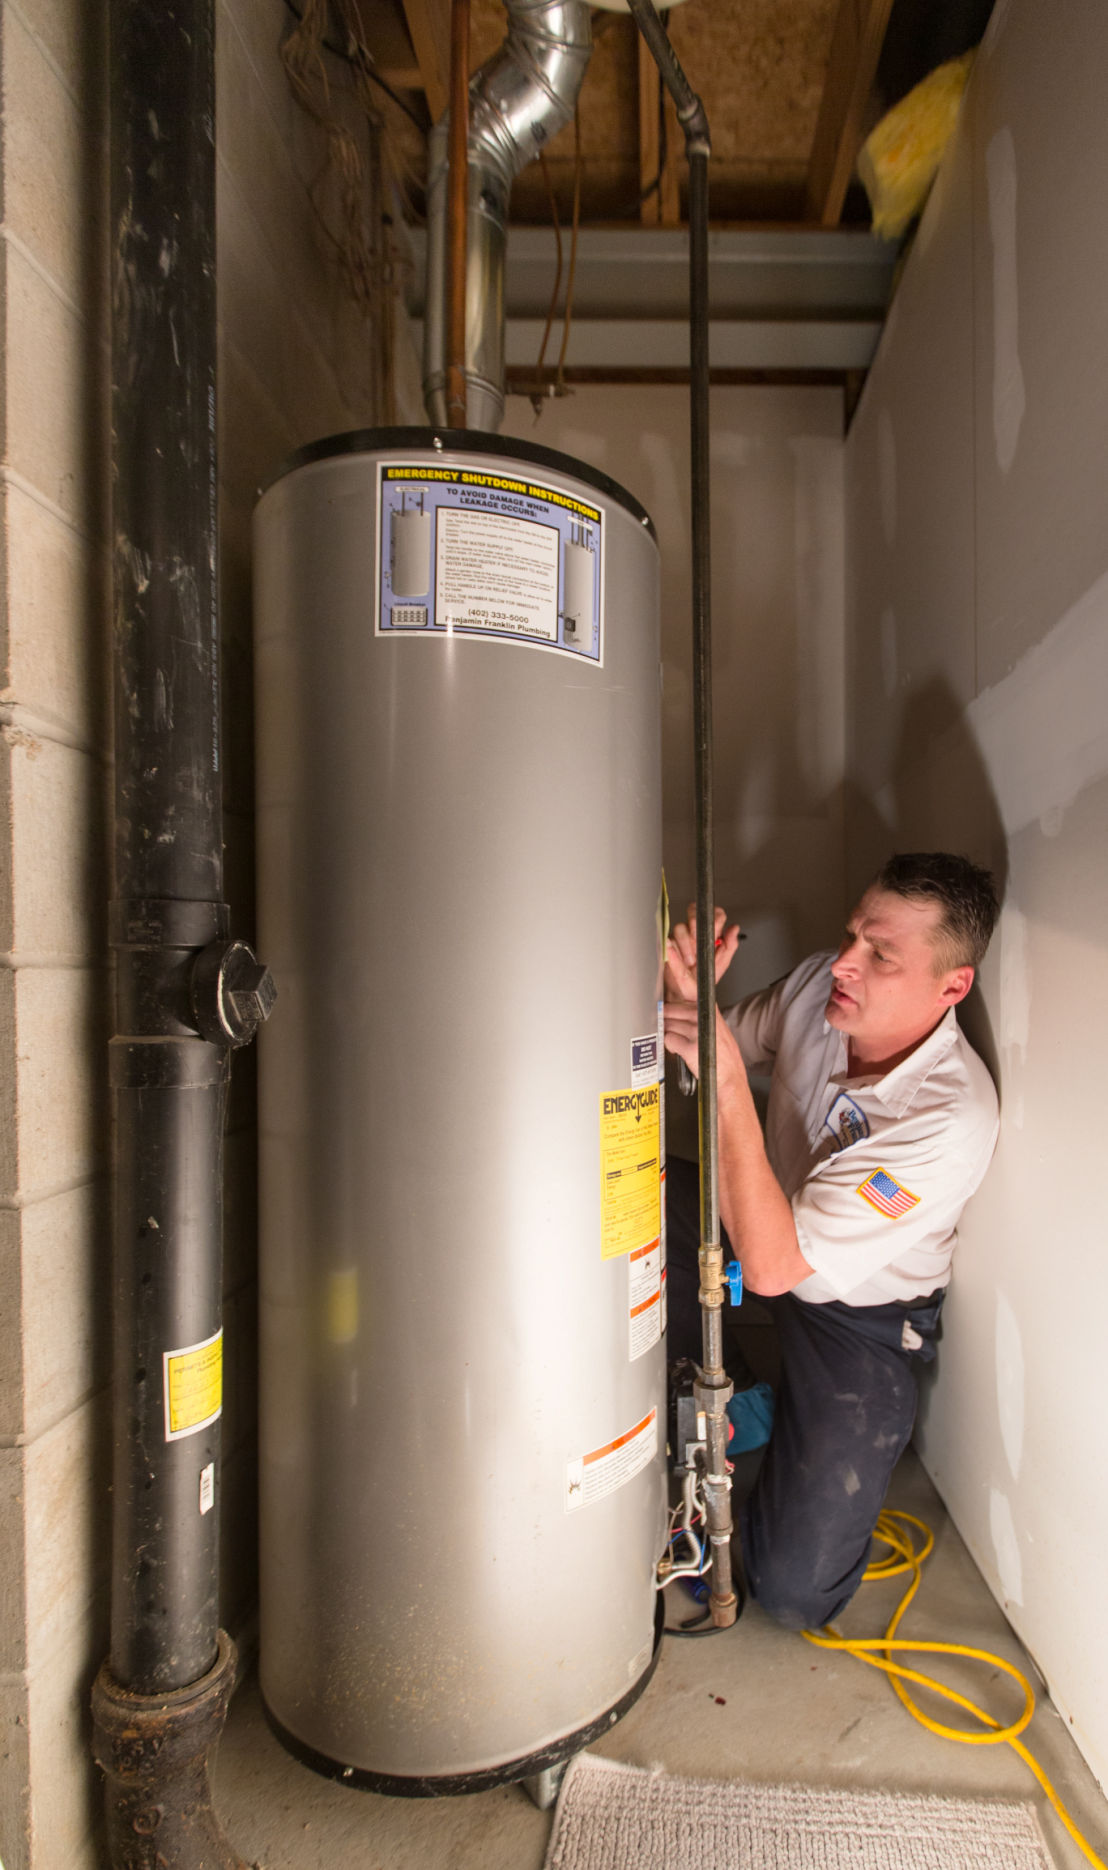 water heater rules will mean a tighter squeeze all around - New Water Heater